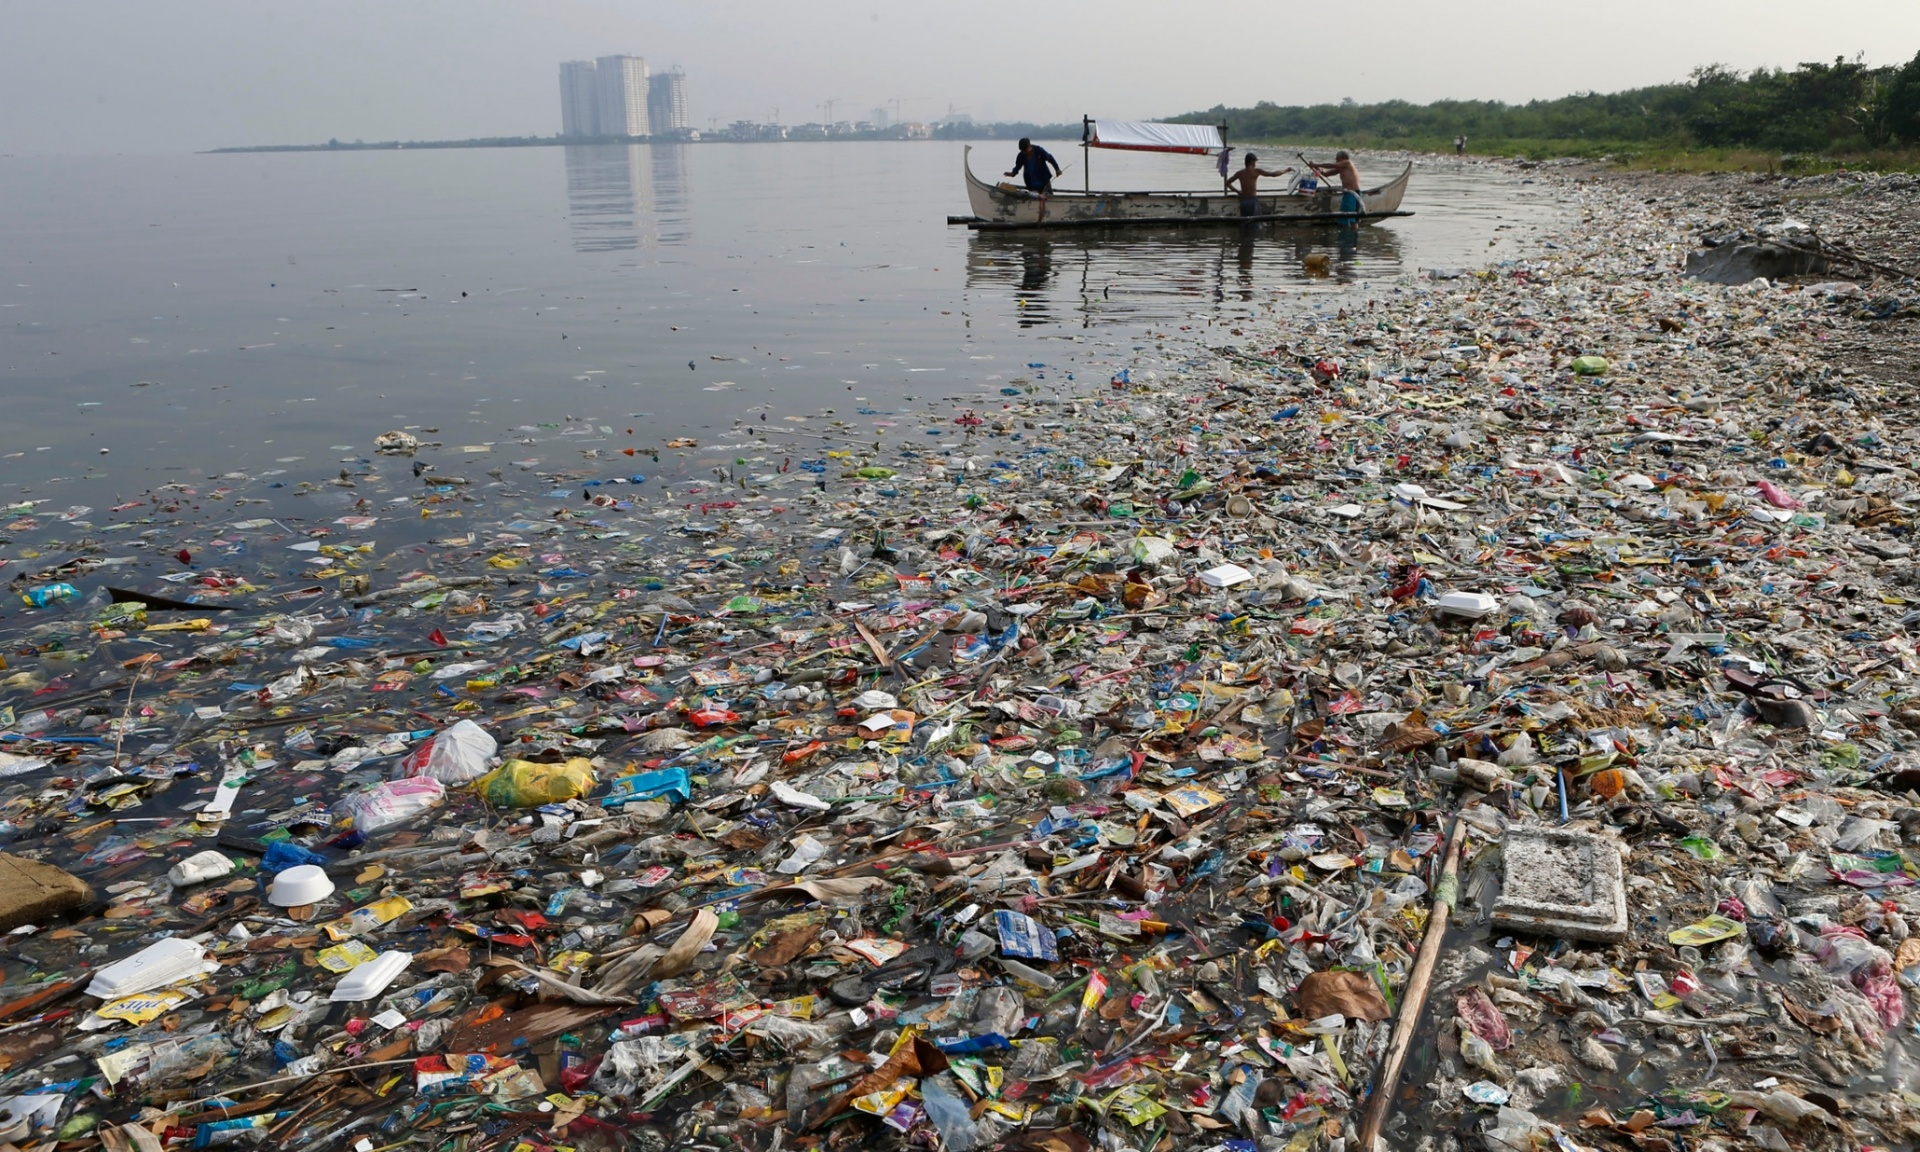 http://www.nationofchange.org/2015/02/18/8-million-metric-tons-plastic-dumped-worlds-oceans-year/